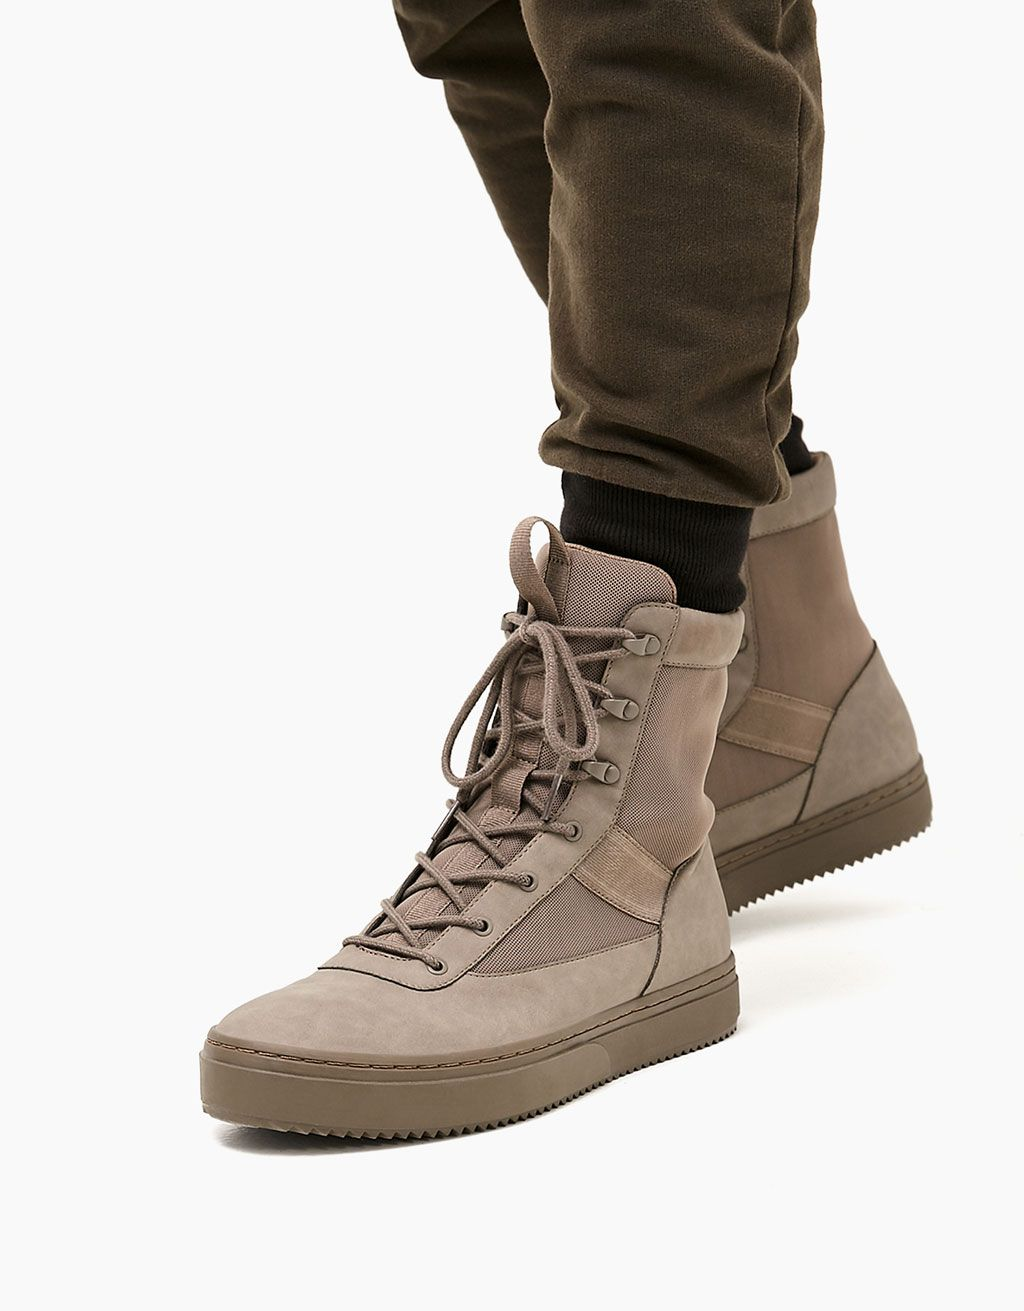 e0cf26bf48 Men s combined high tops - Naturals - Bershka Spain